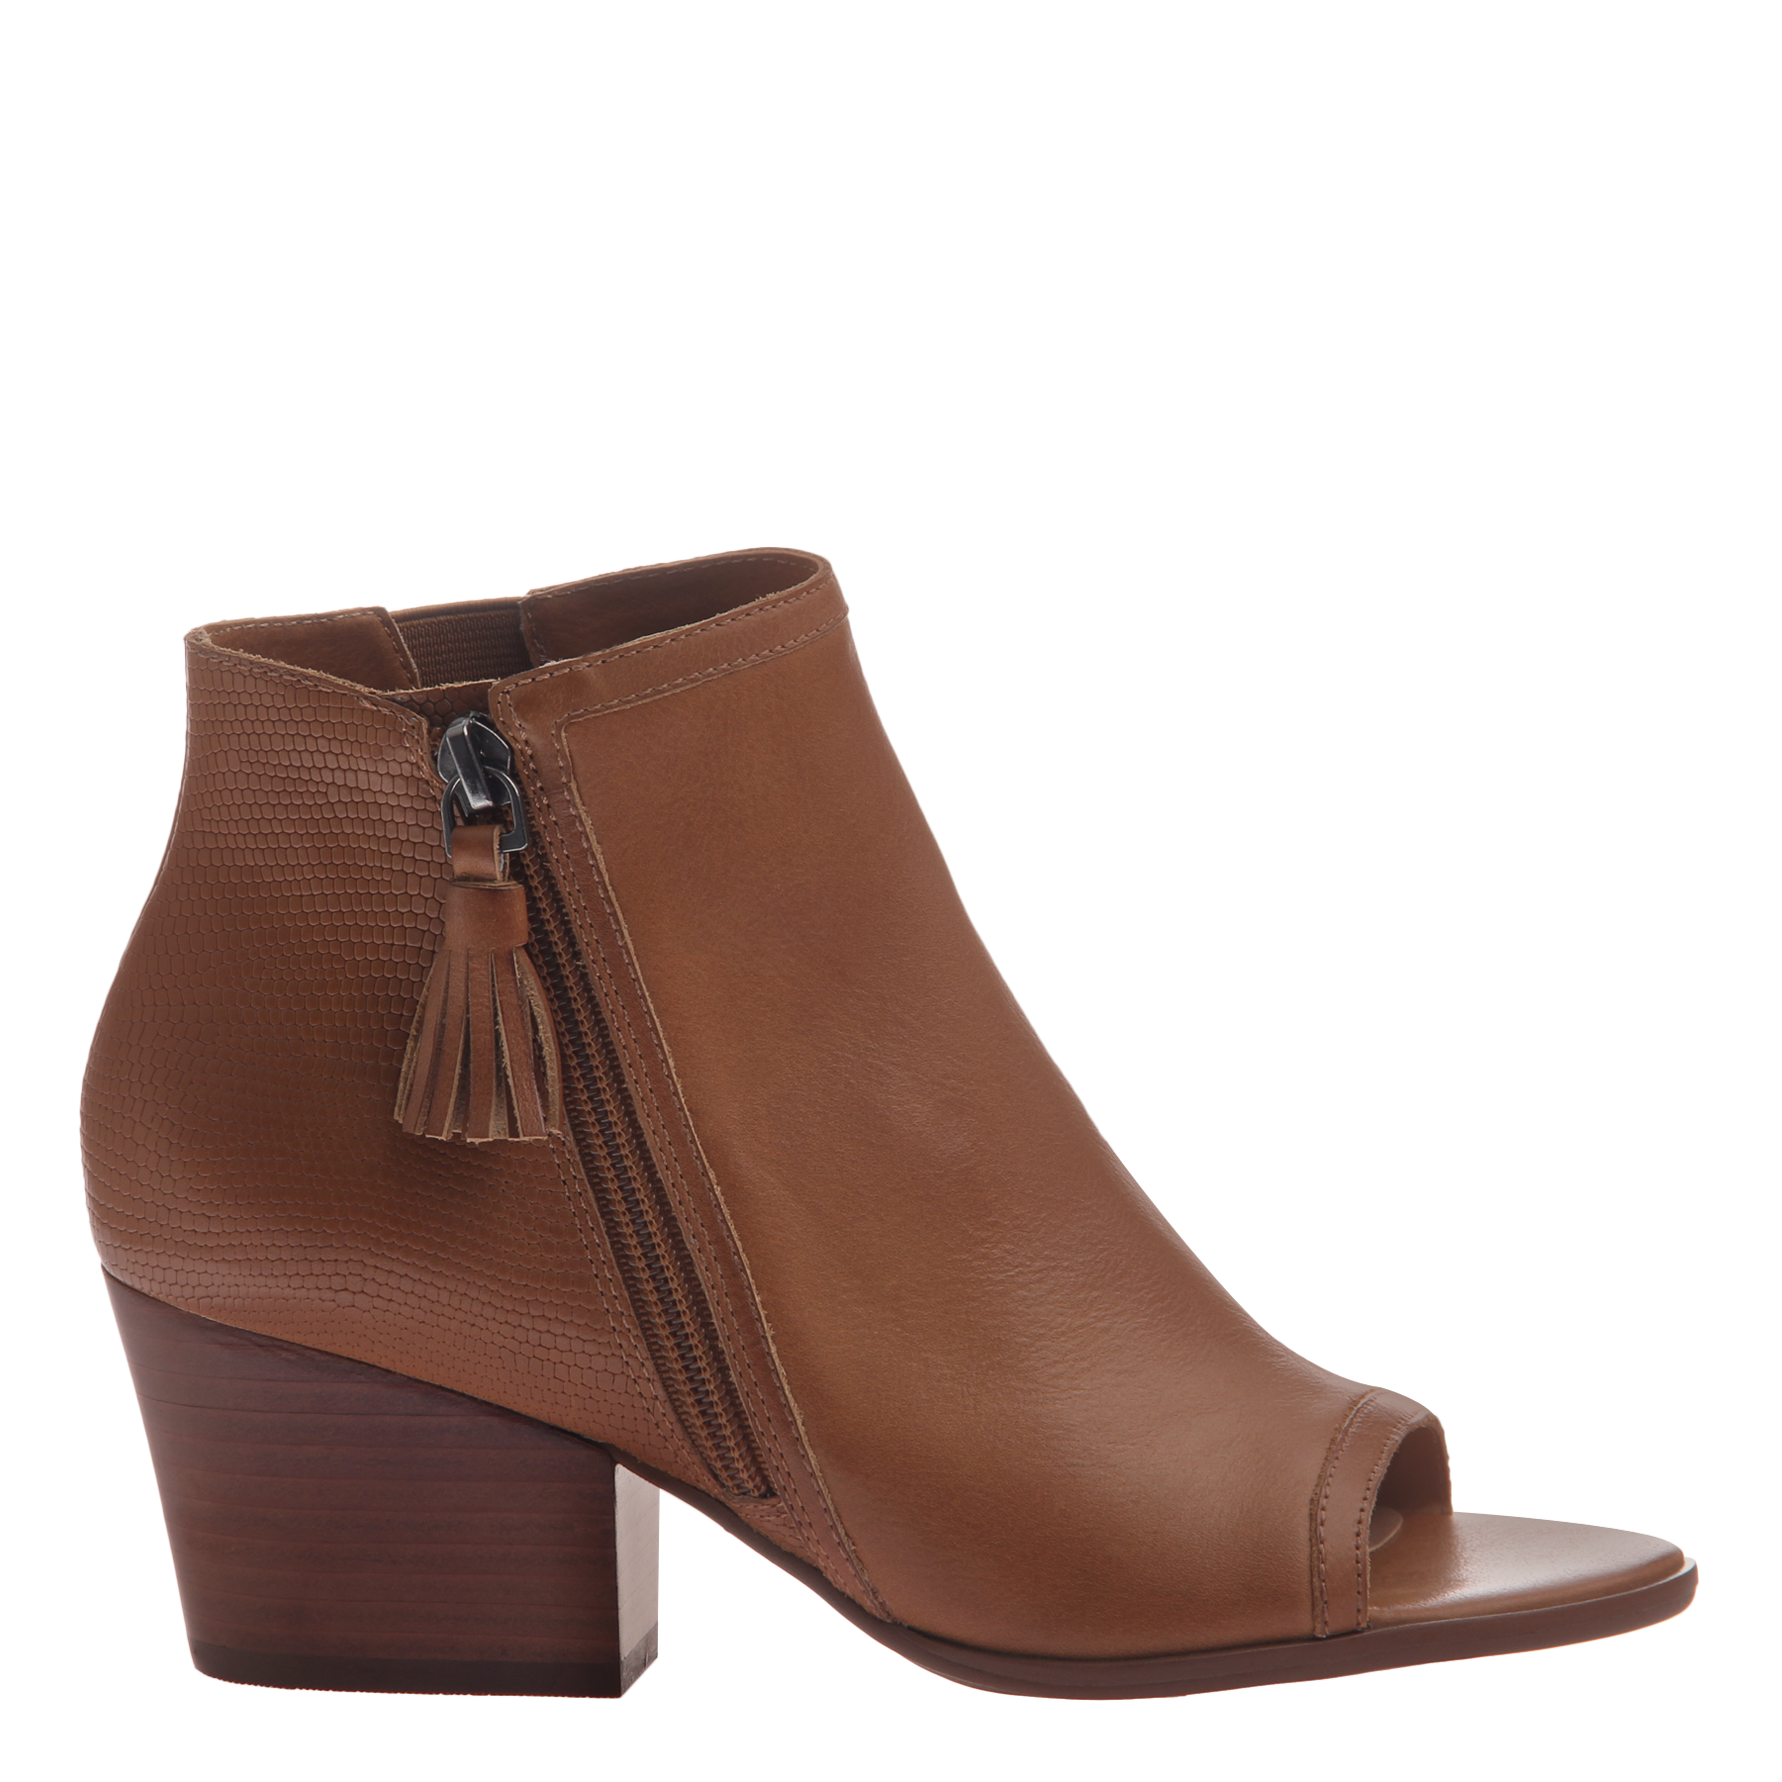 Transparent boot open toe. Ania in butterscotch booties